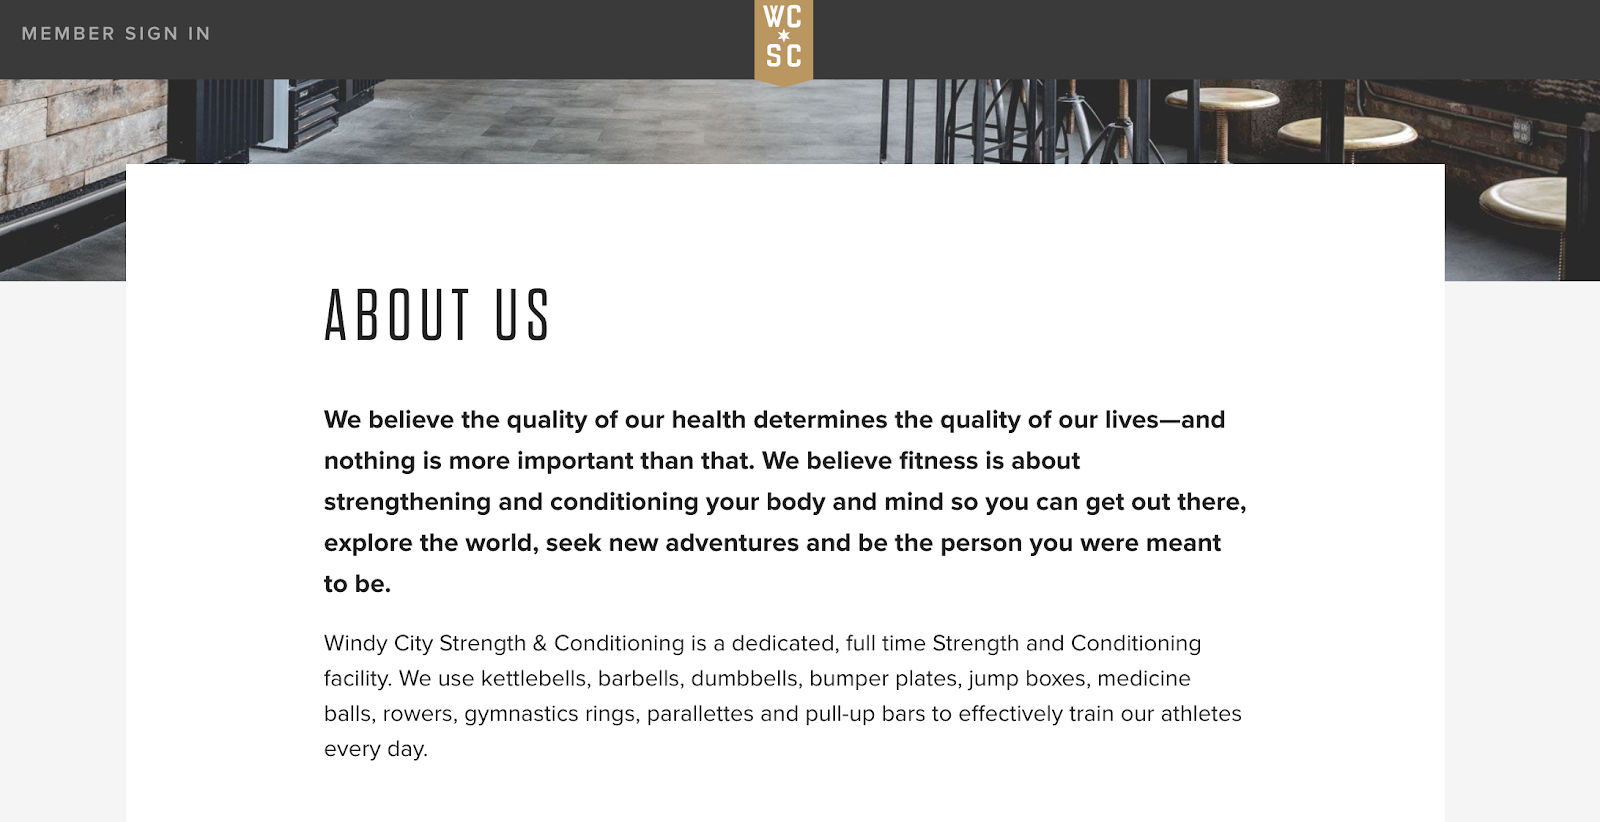 about us page on Windy City Strength and Conditioning